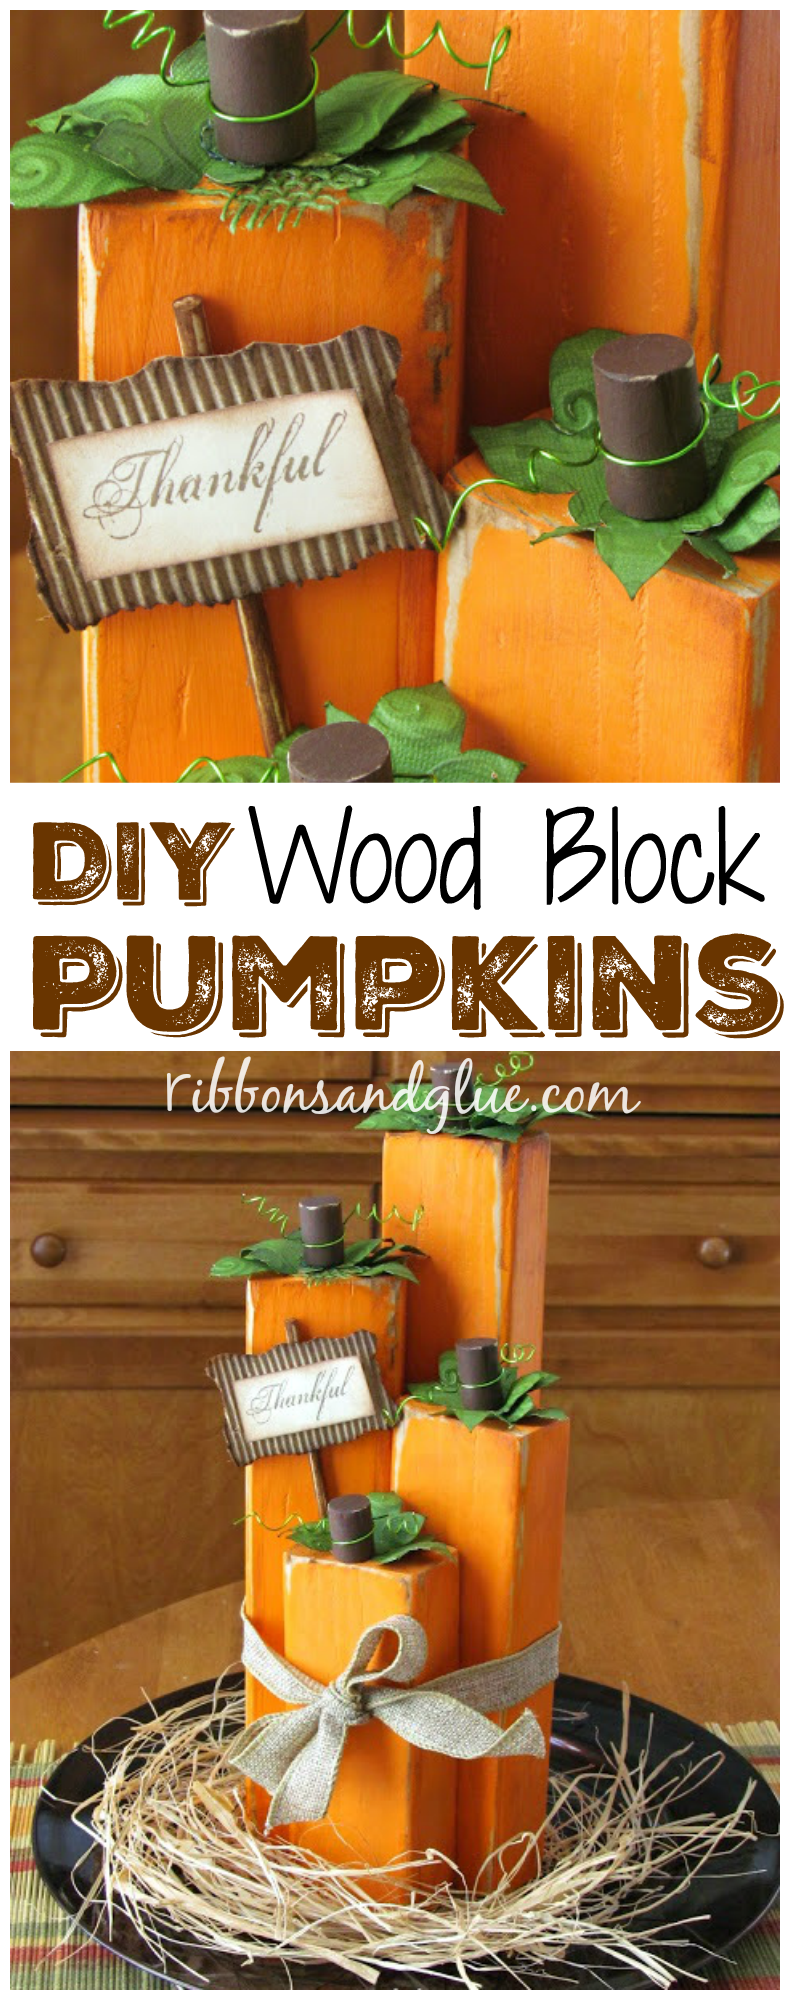 How to make Wood Block Pumpkins